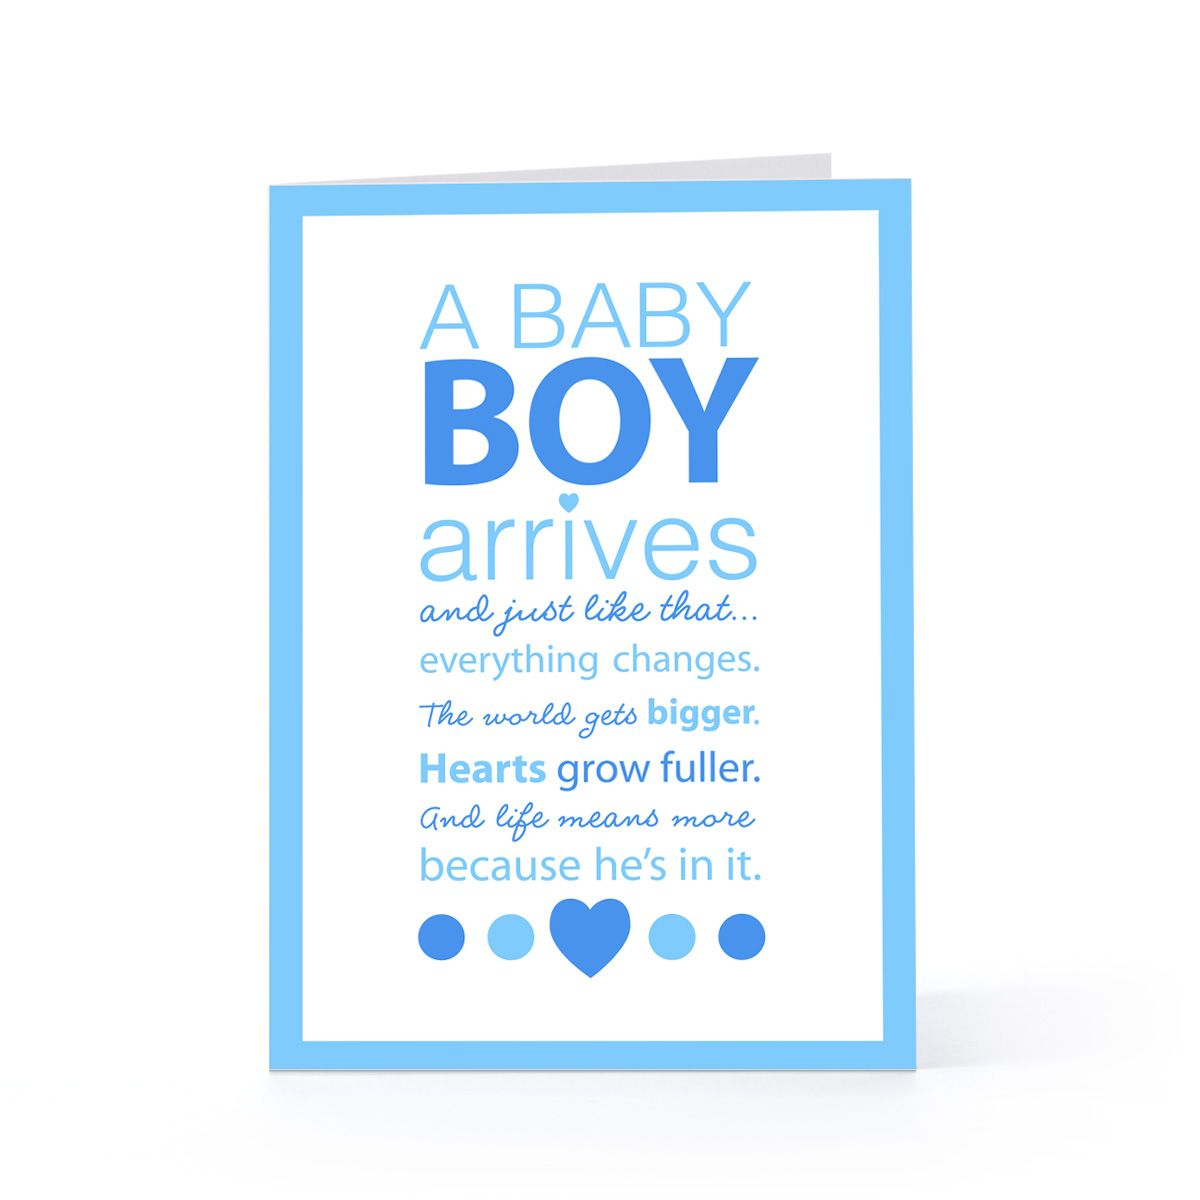 Congratulations baby boy poems images for baby boy quotes and poems congratulations on new baby boy messages kristyandbryce Images